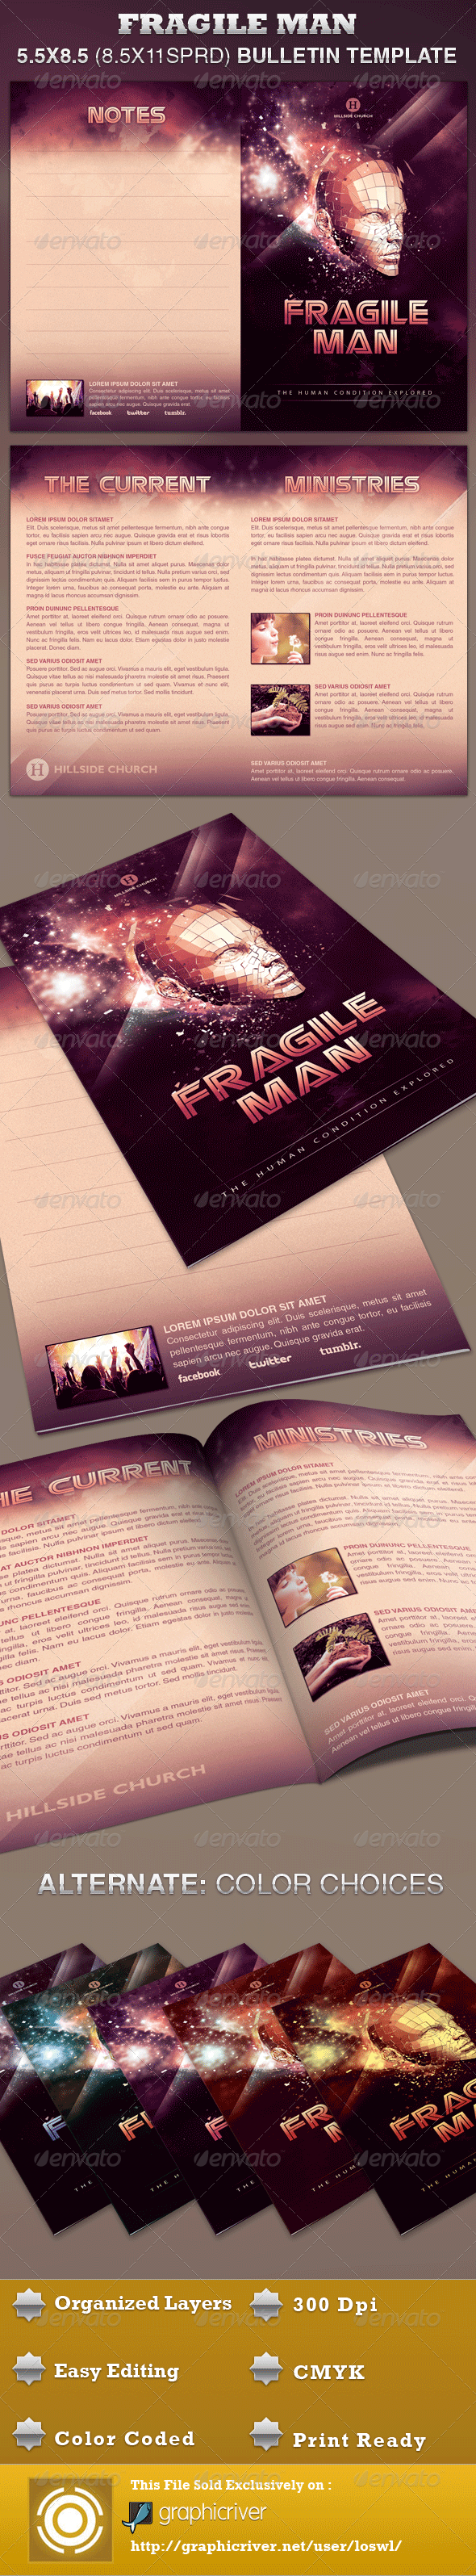 Fragile Man Church Bulletin Template - Church Flyers